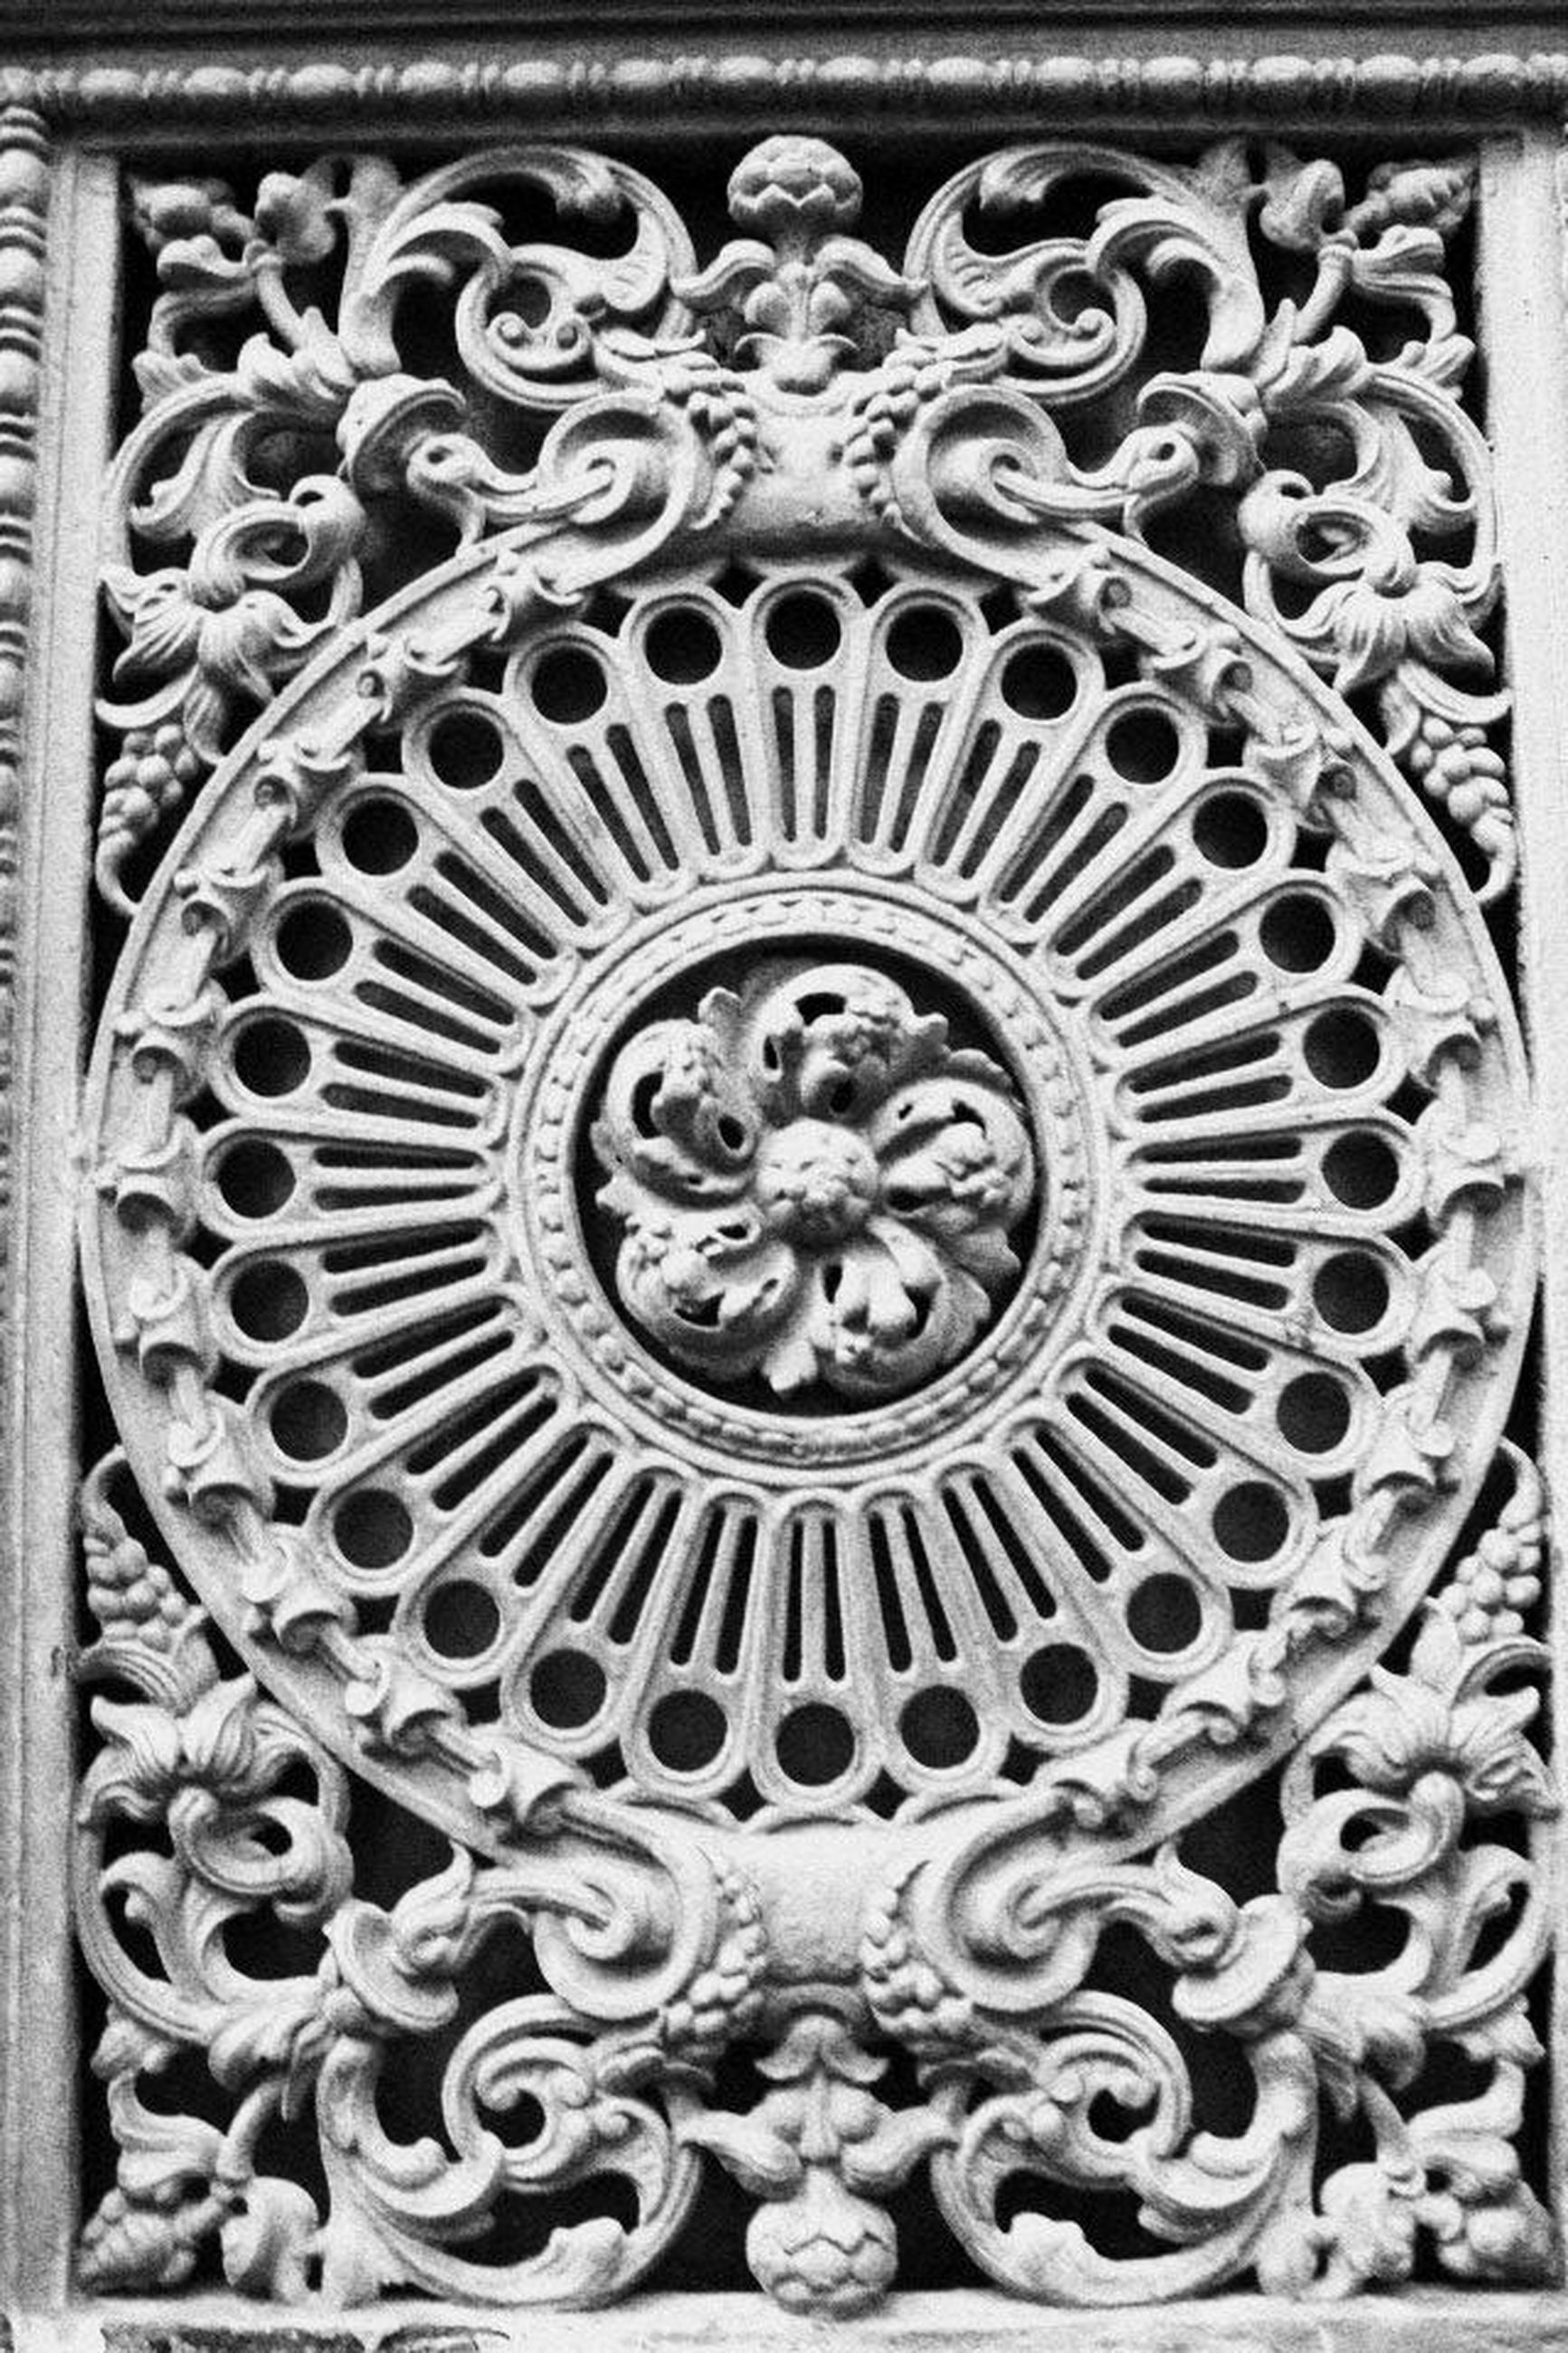 transfer print, art and craft, art, creativity, ornate, auto post production filter, carving - craft product, circle, human representation, indoors, sculpture, metal, close-up, design, pattern, old, statue, history, built structure